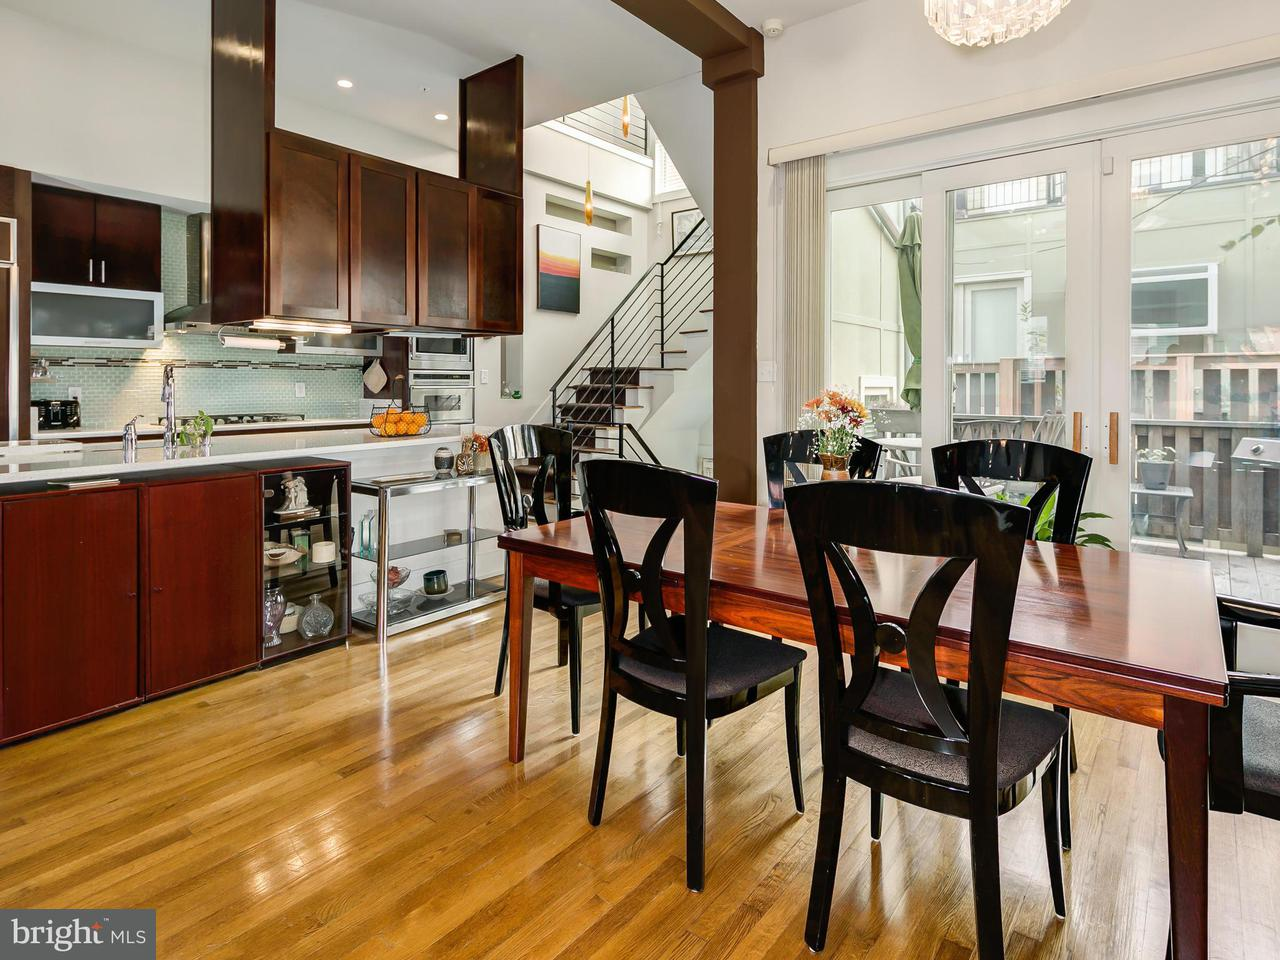 Single Family Home for Sale at 1217 10th St Nw #C 1217 10th St Nw #C Washington, District Of Columbia 20001 United States